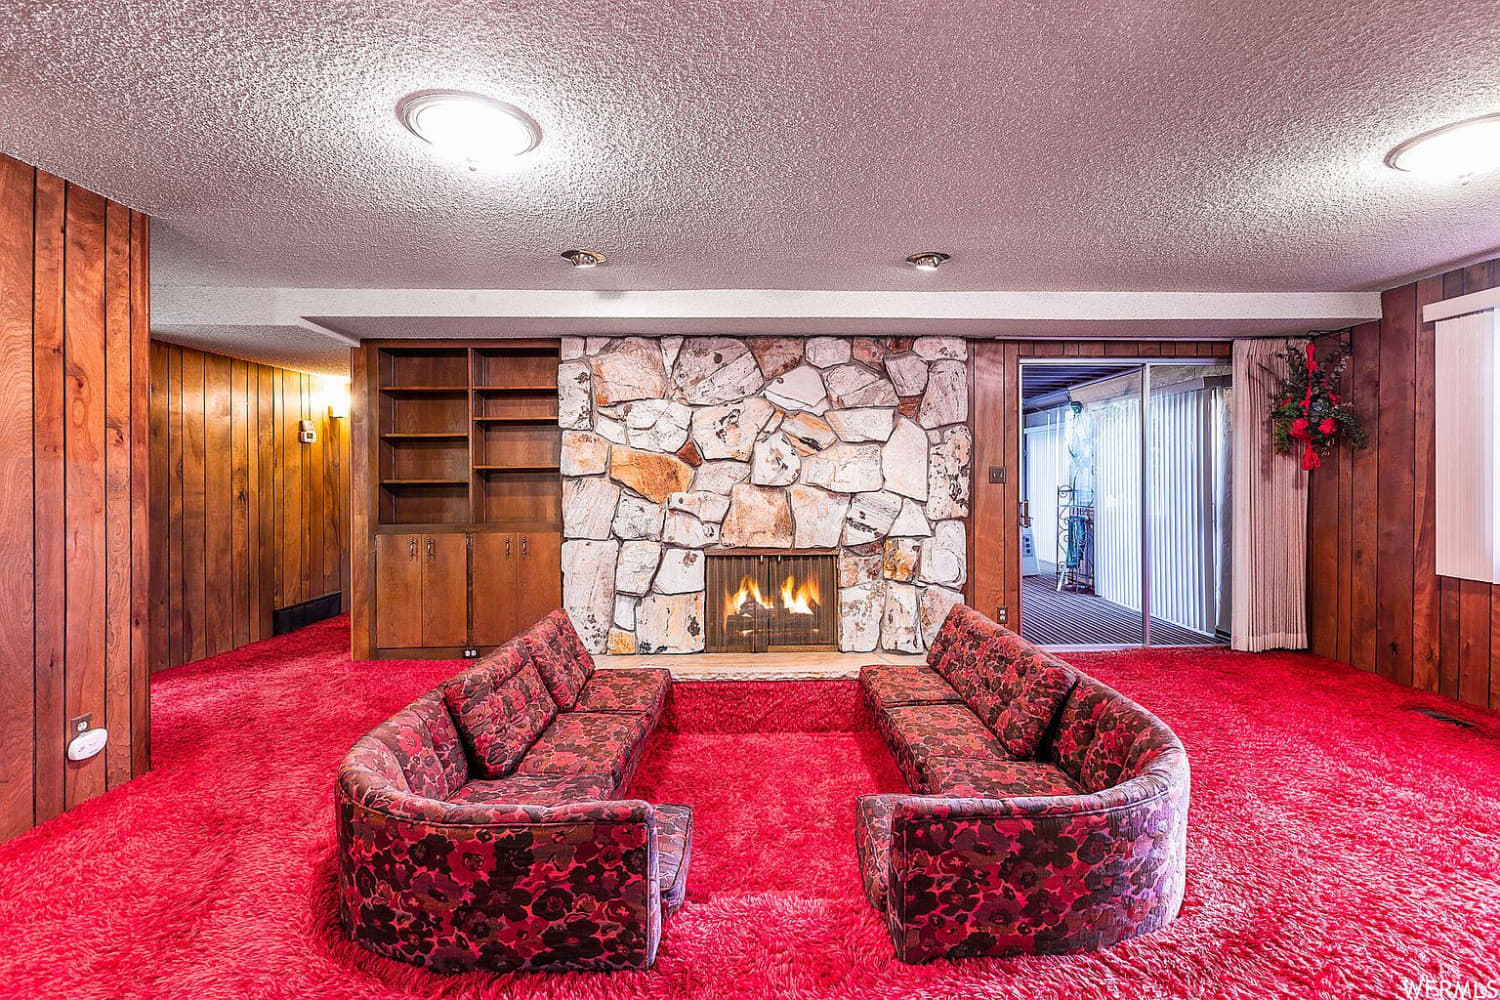 This Time Capsule House for Sale in Salt Lake City Has a Groovy Conversation Pit